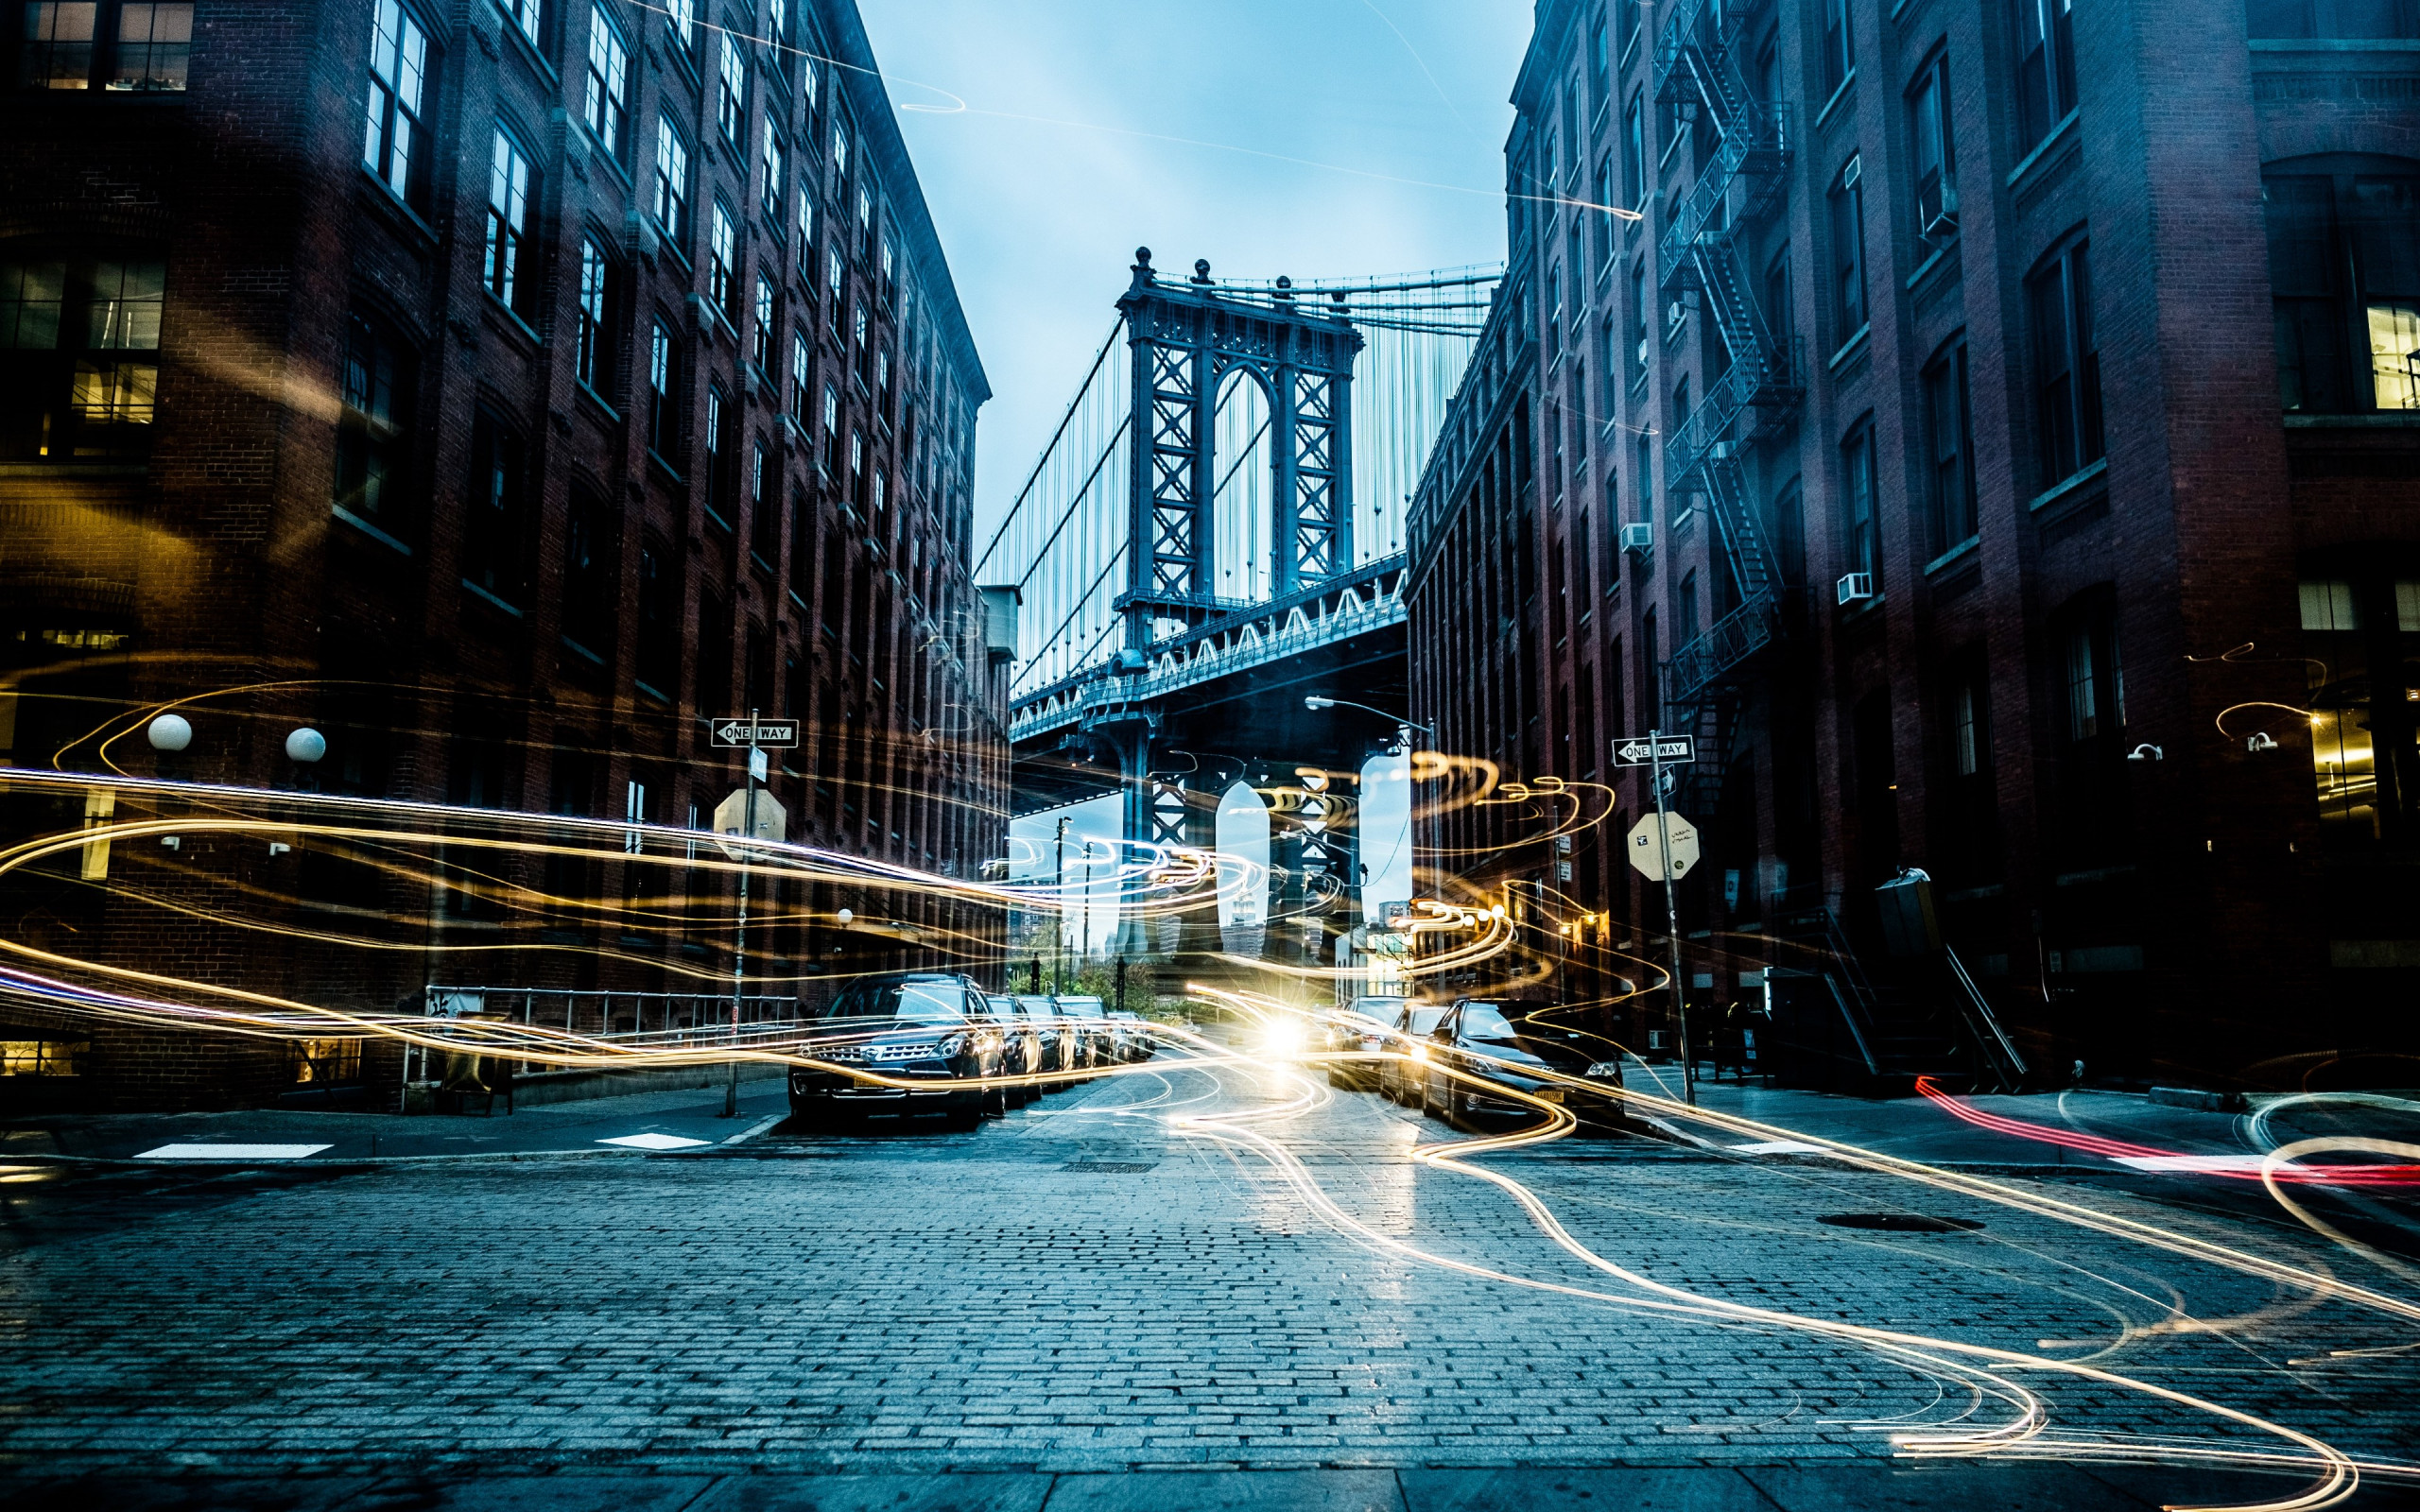 Light painting on New York streets | 2560x1600 wallpaper